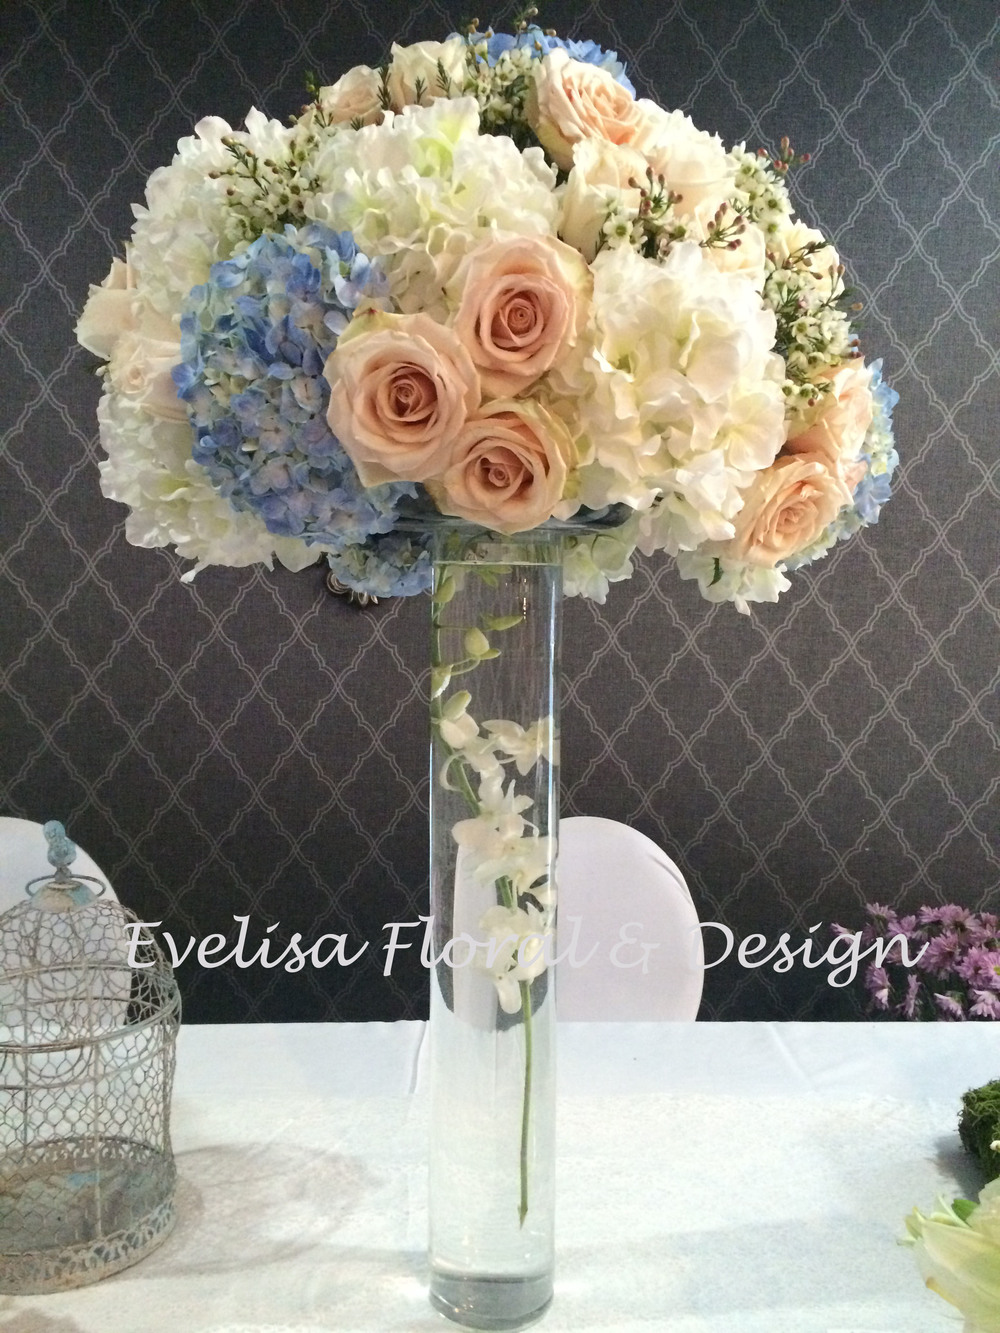 We created this arrangement and it's actually a combination of Faux & Real flowers.